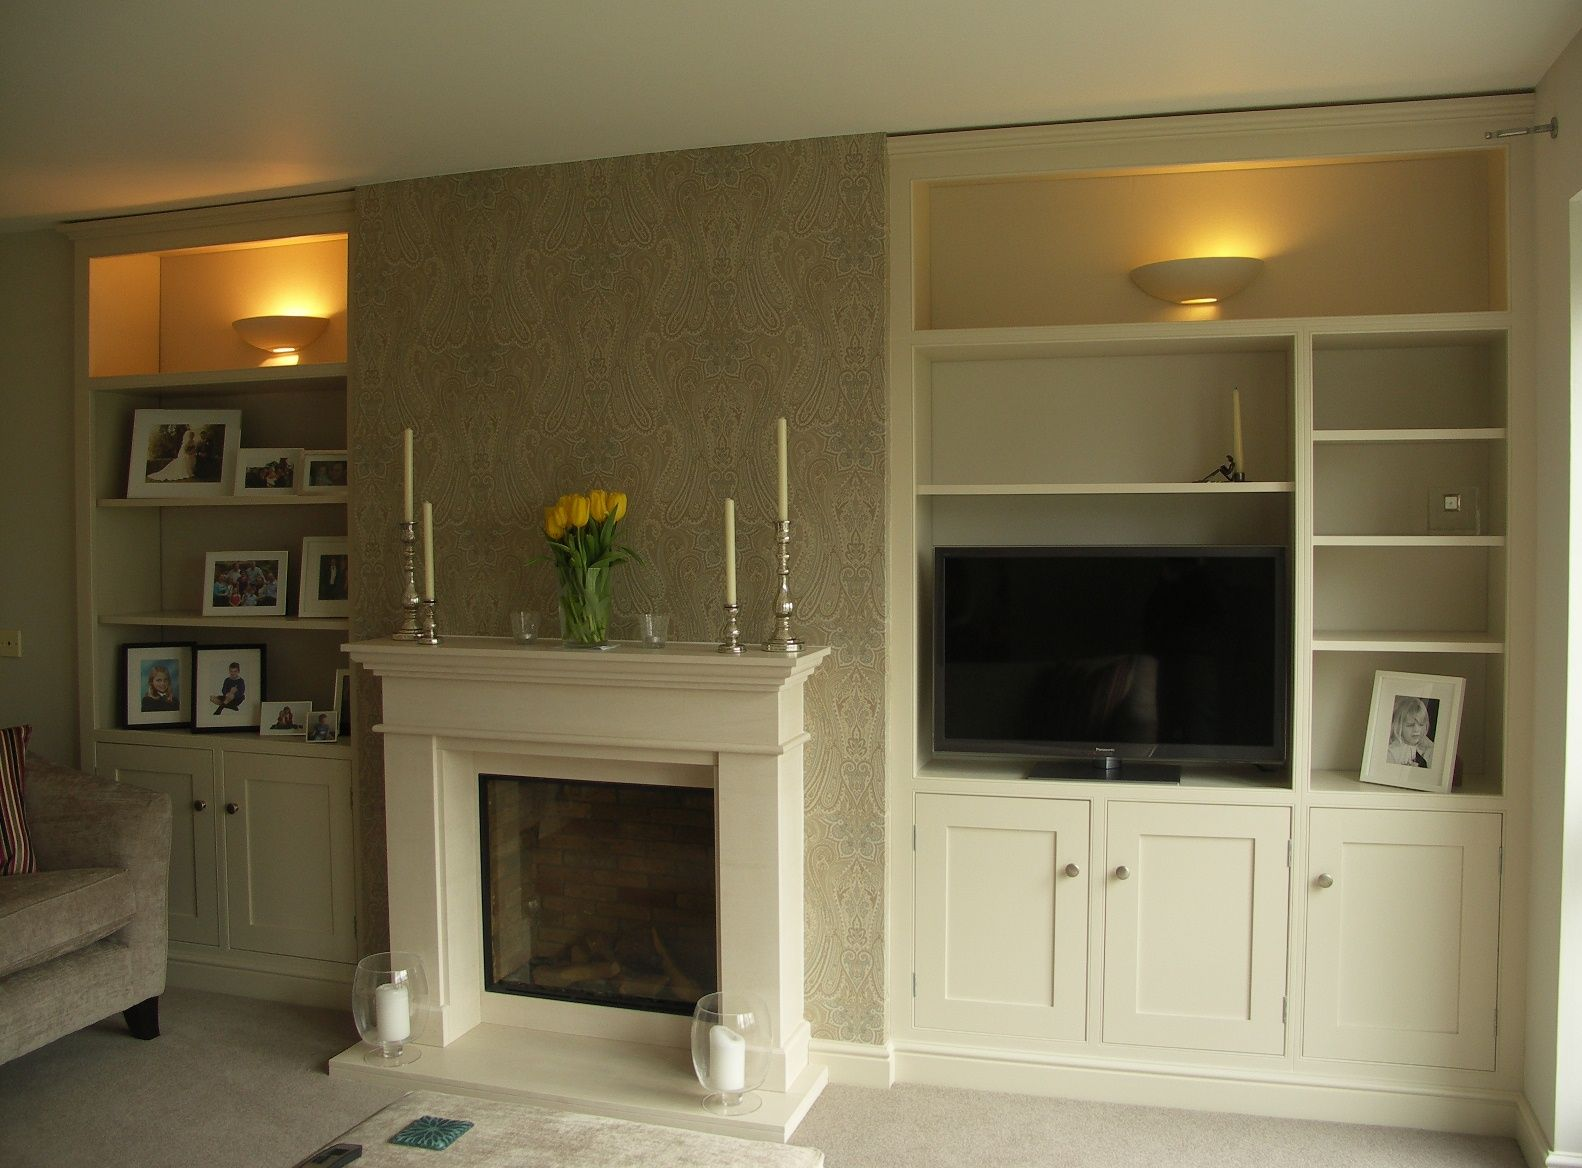 Make Use Of Your Chimney Alcoves By Fitting Them Out With Some Stylish Painted Bookcases And Cupboards Painted In Far Home Alcove Shelving Living Room Designs